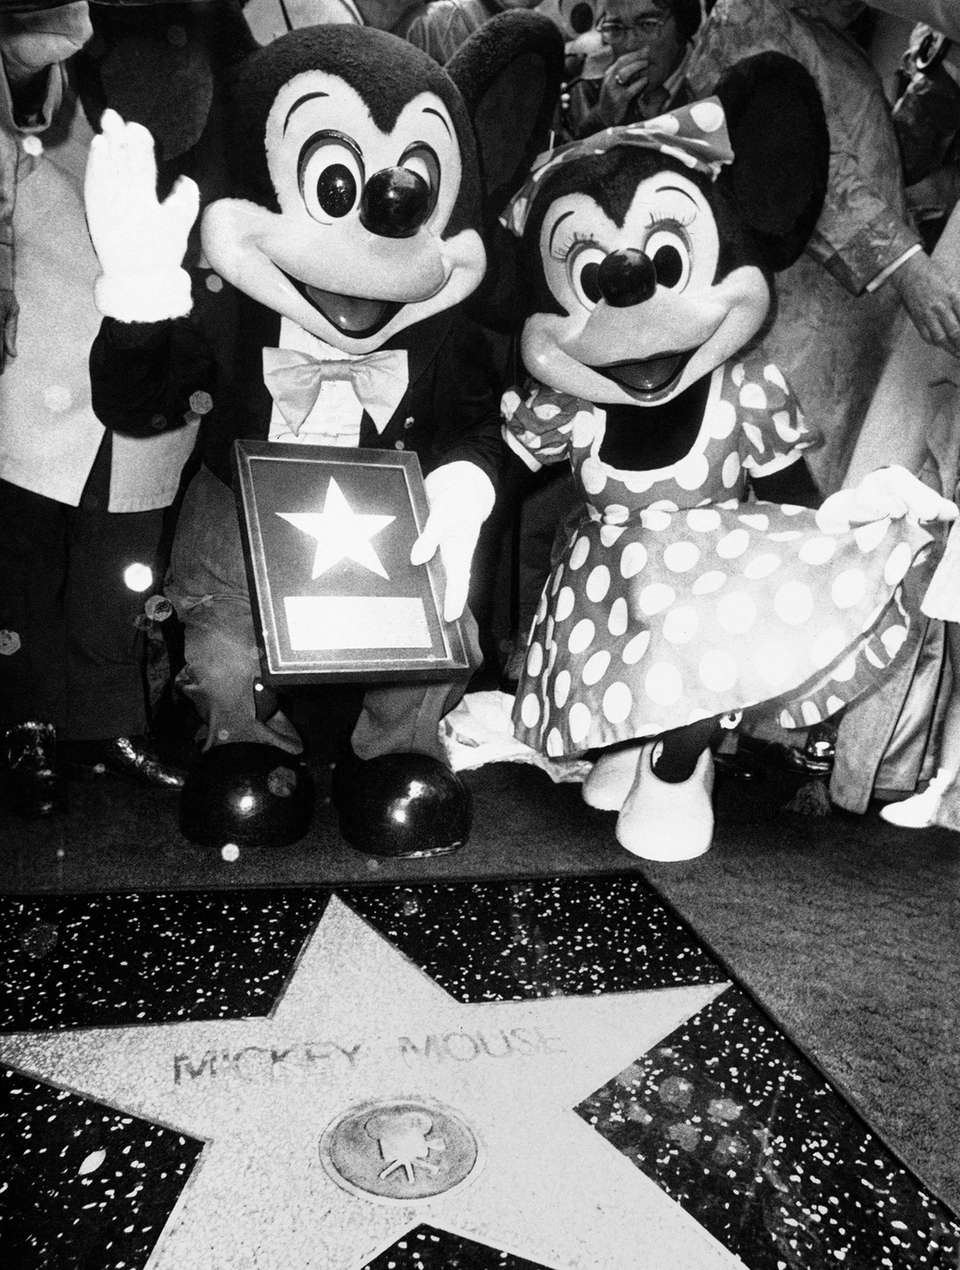 Mickey Mouse, the cartoon character created by Walt